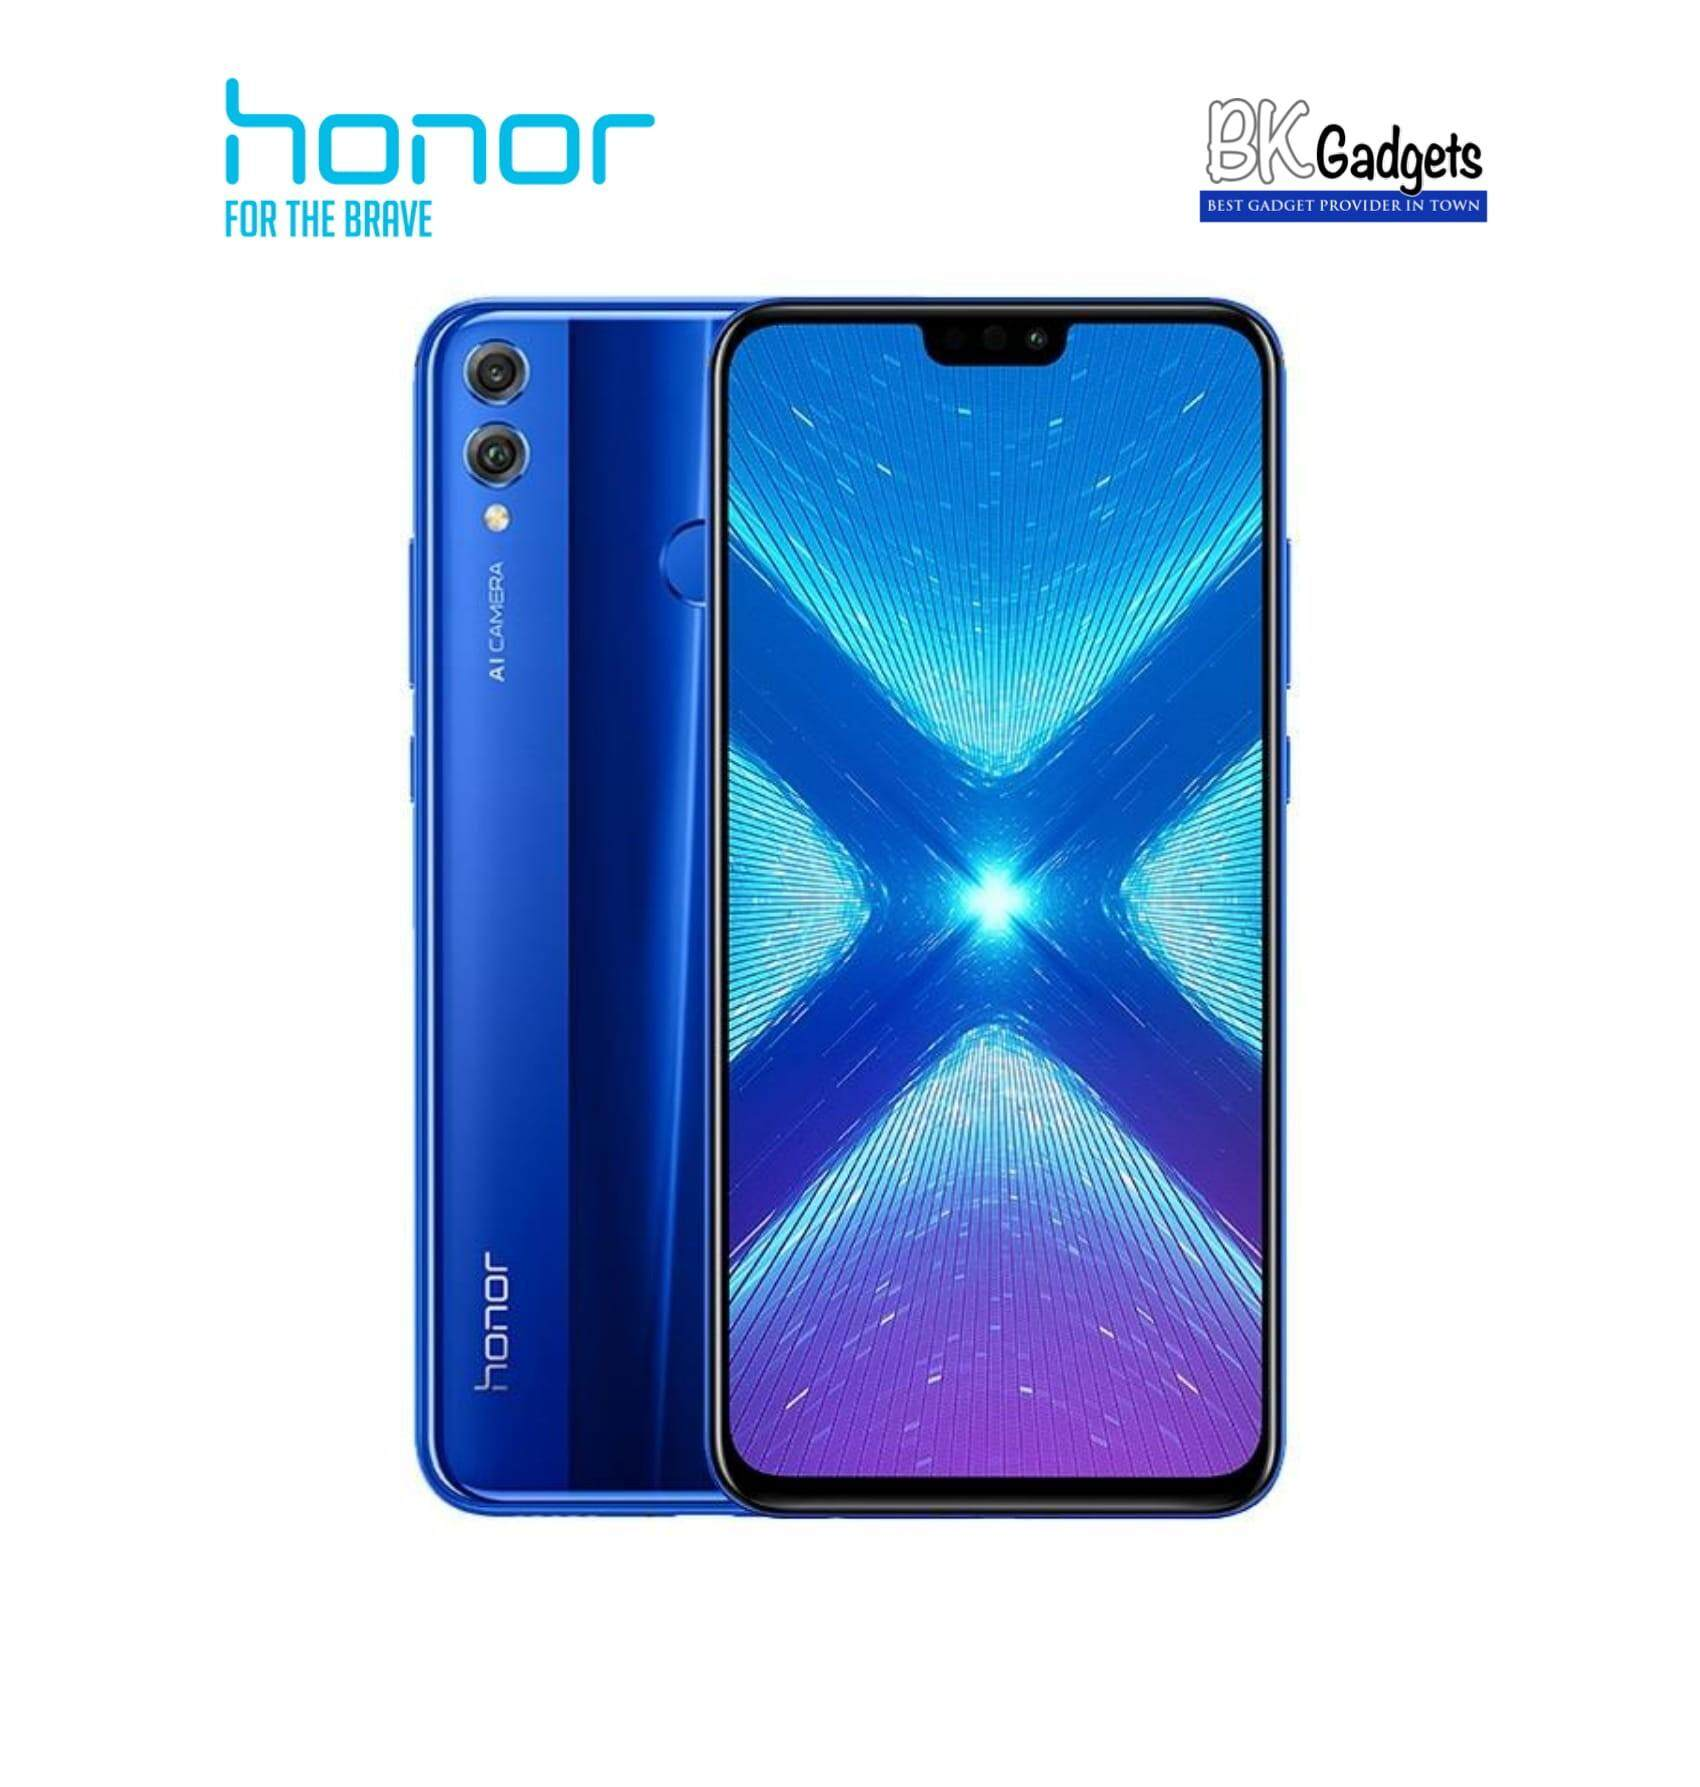 Honor 8X 4/128GB Blue- Original from Honor Malaysia 1 Year Warranty